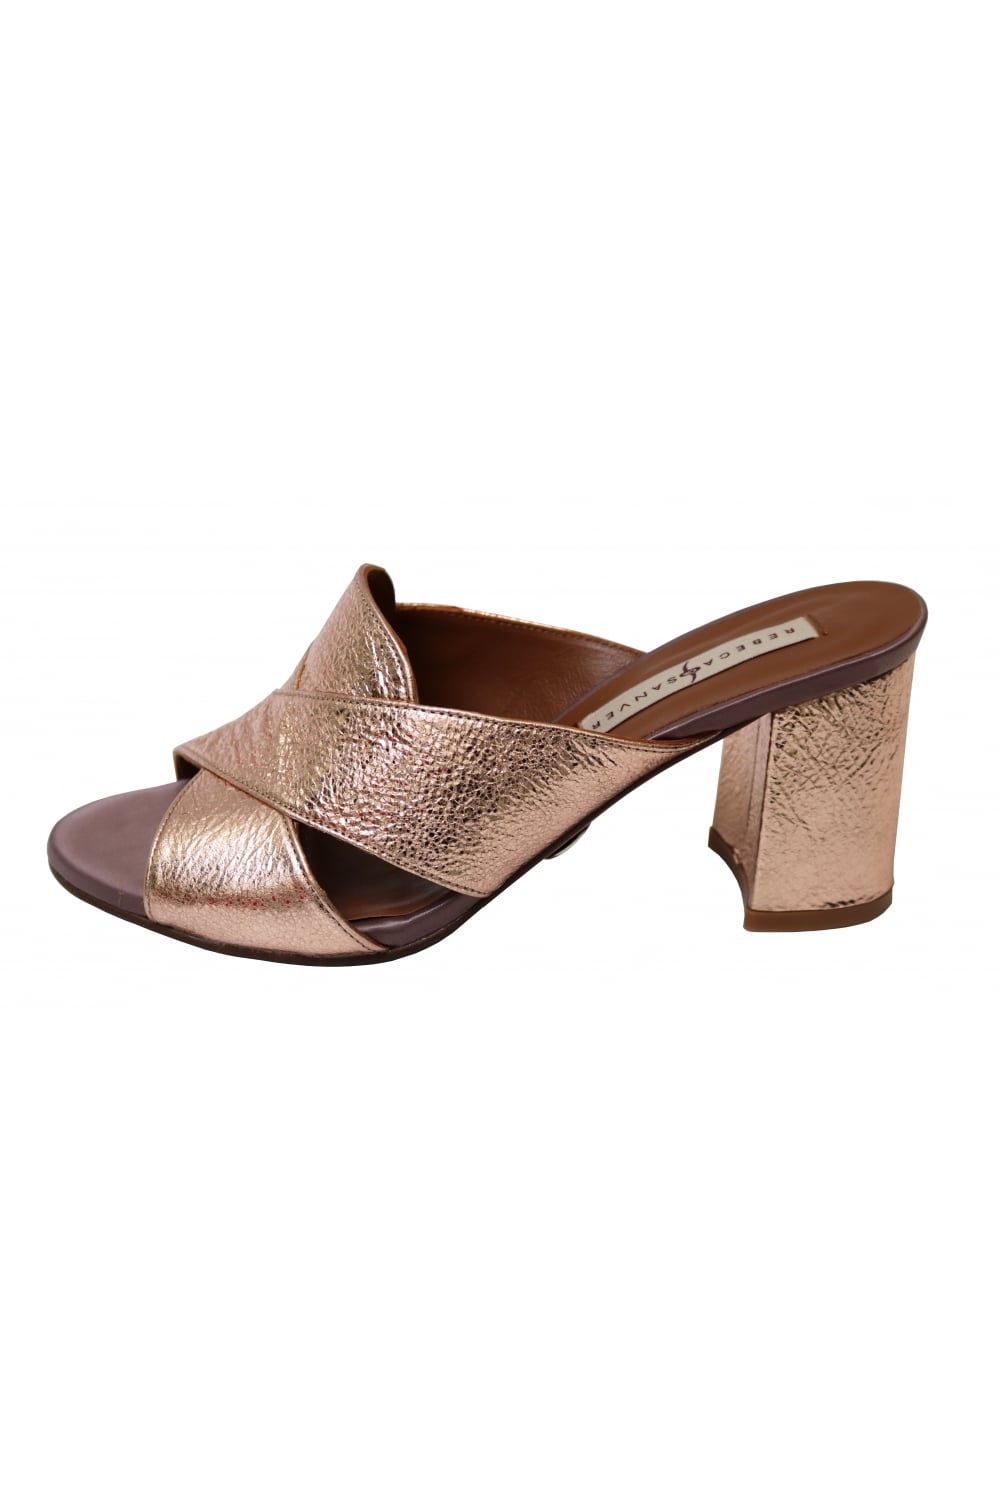 6edbc27b906e REBECCA SANVER Rebeca Sanver Women s Yael Yuna Mule in Rose Gold ...